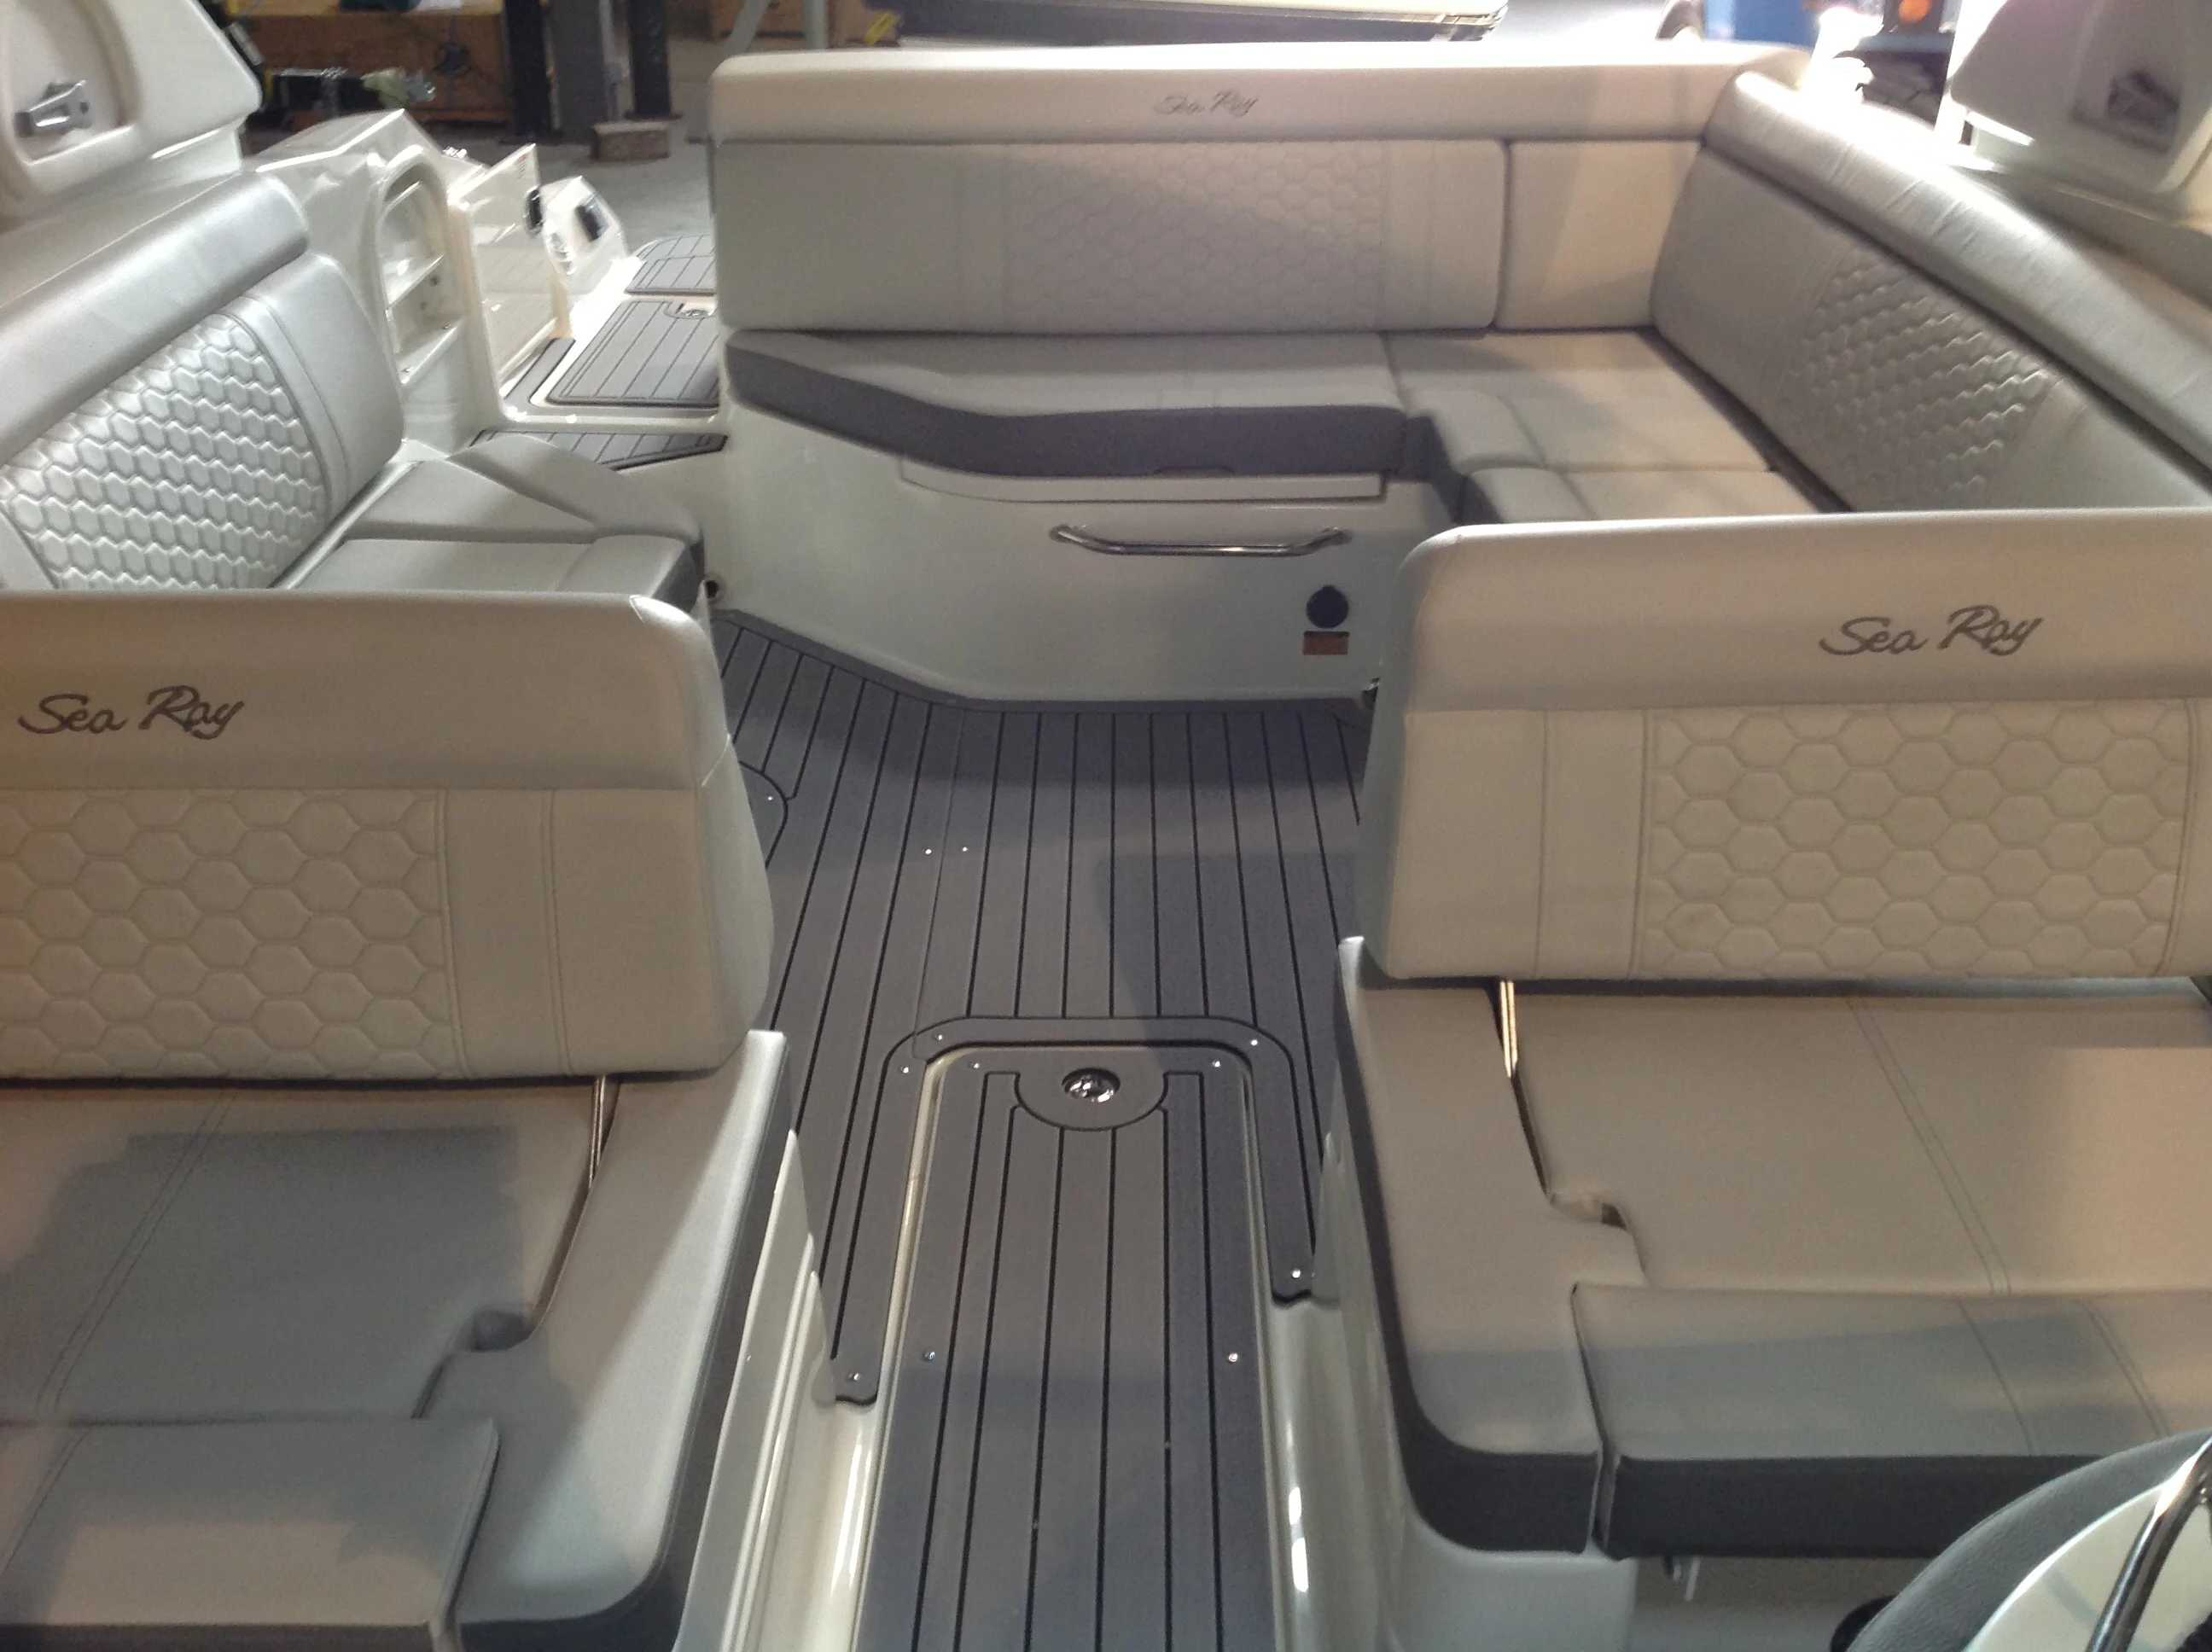 2021 Sea Ray boat for sale, model of the boat is 270 SDX & Image # 9 of 21